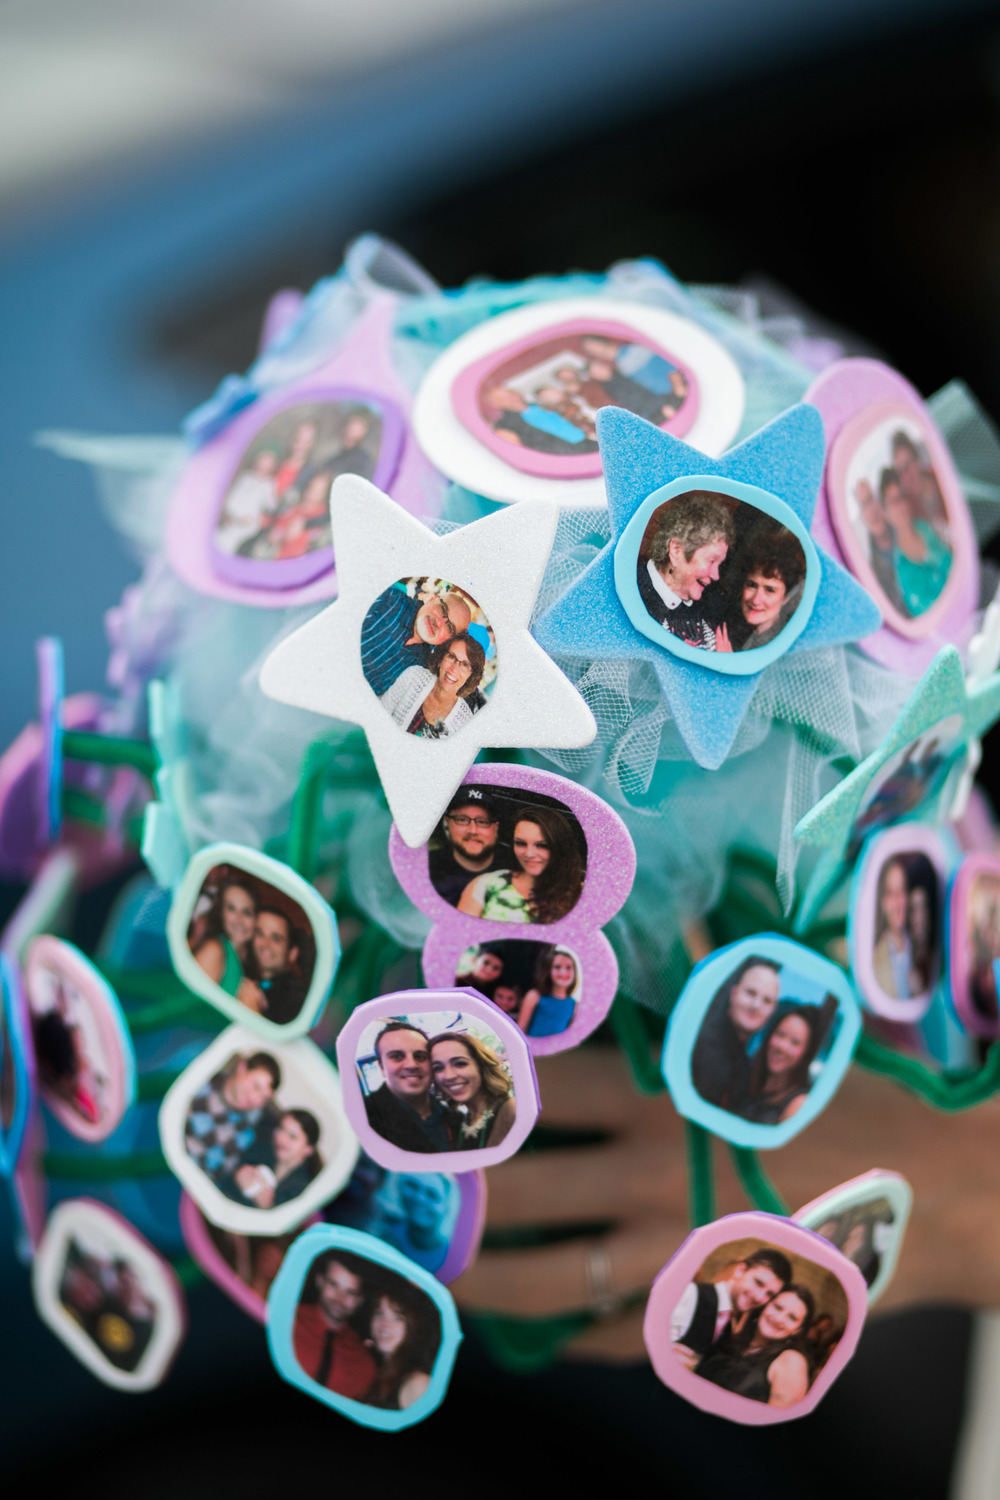 Love this handmade bouquet incorporating all their friends and family from back home in New York!